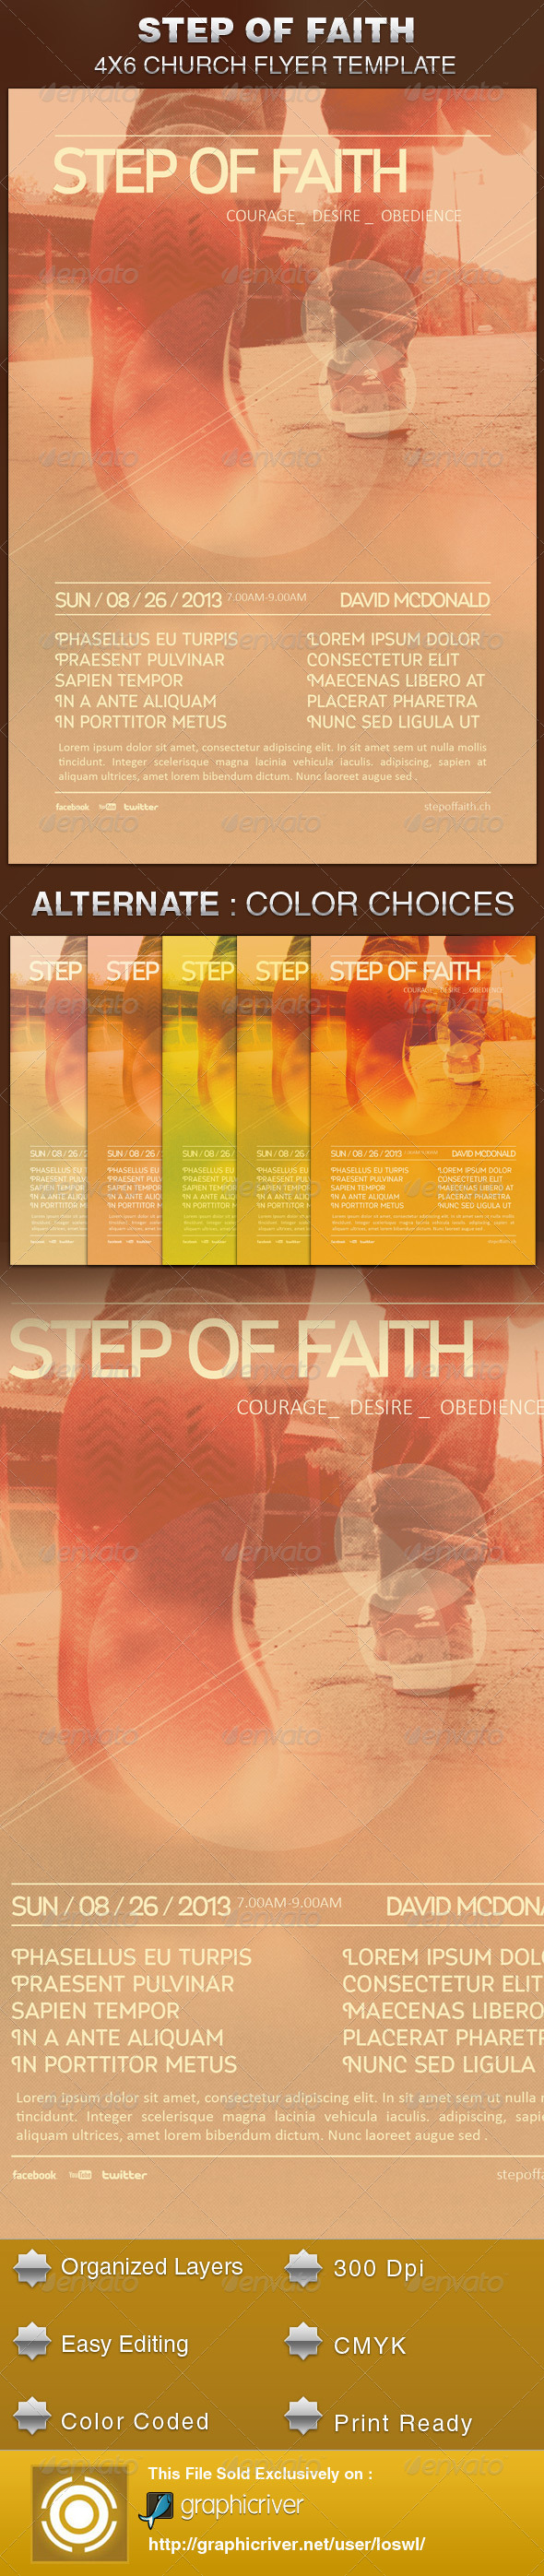 GraphicRiver Step of Faith Church Flyer Template 5459097